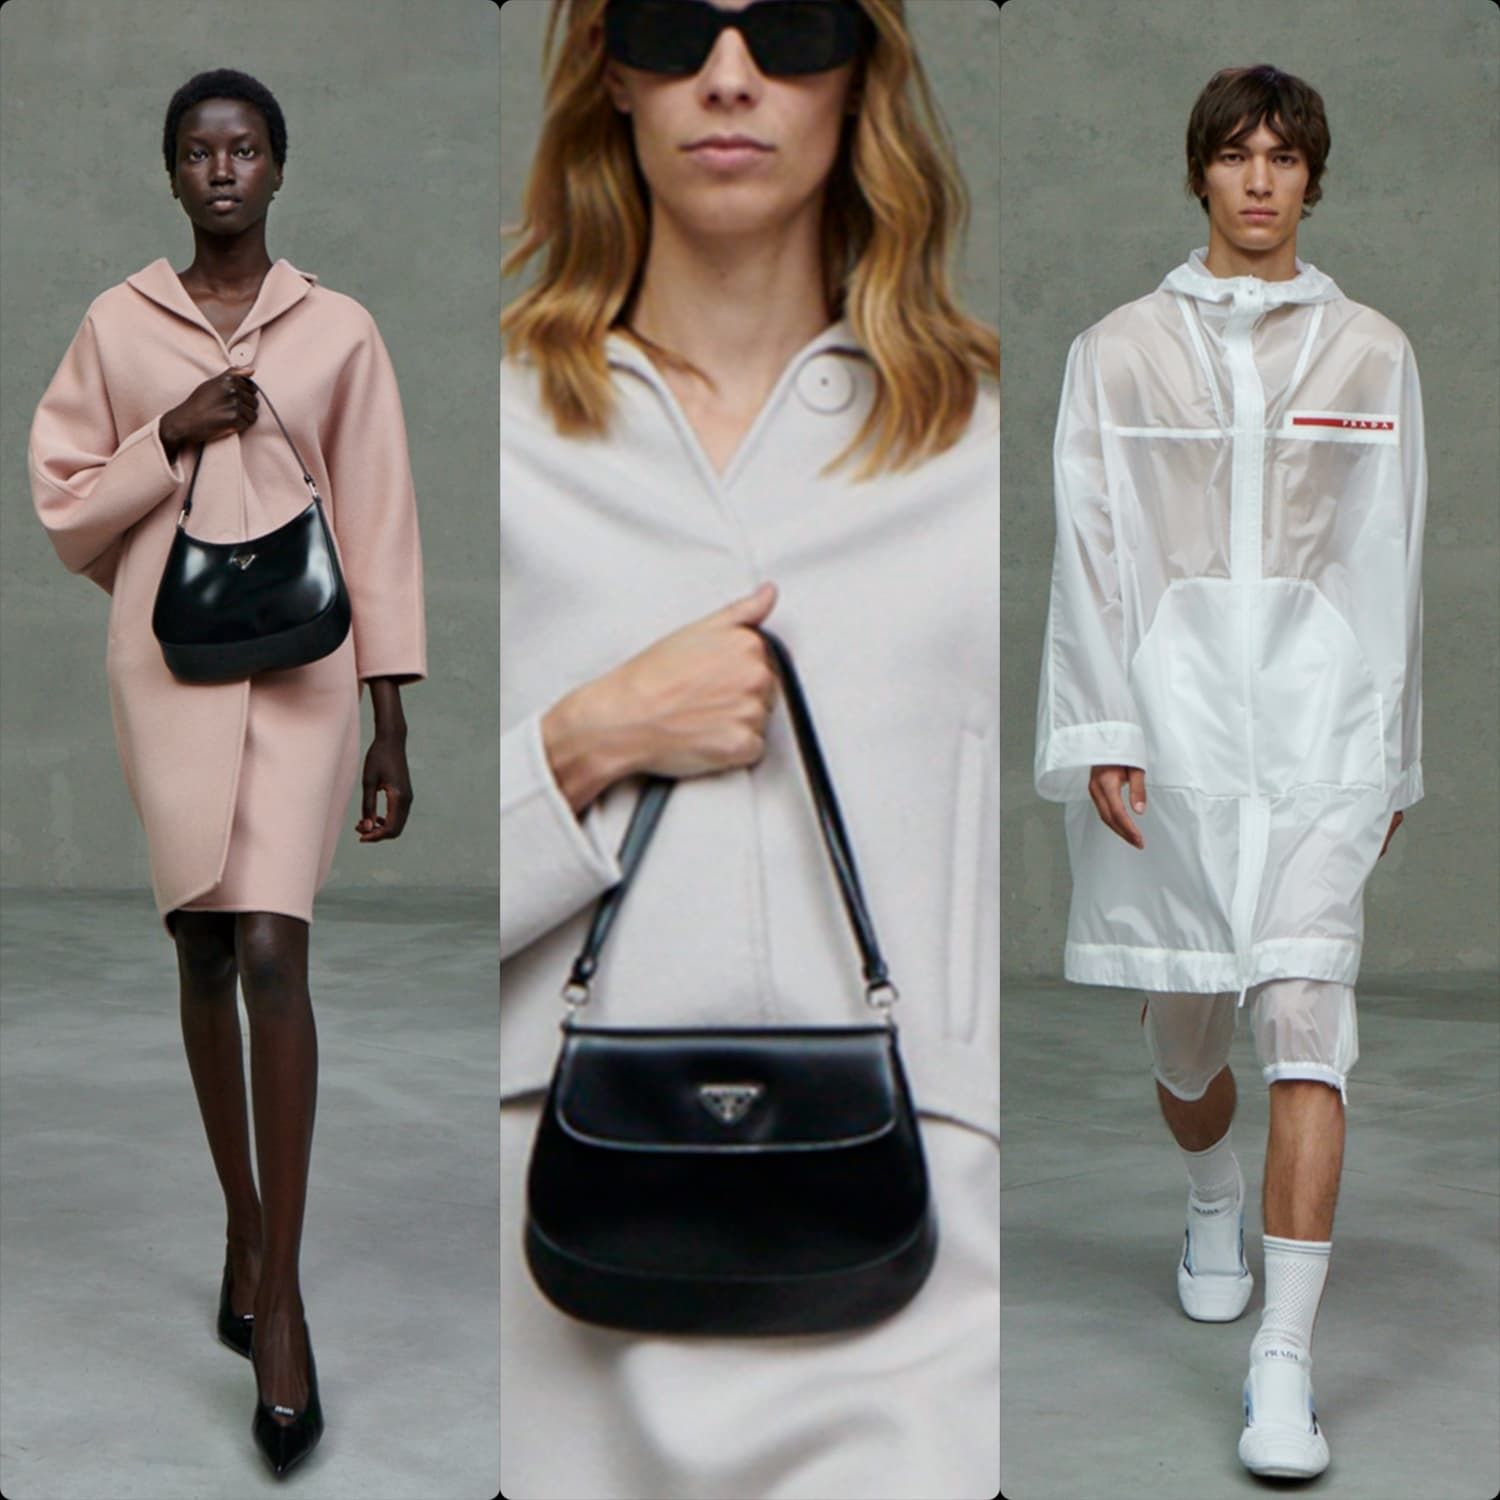 Prada Spring Summer 2021 Milan Digital Fashion Week by RUNWAY MAGAZINE